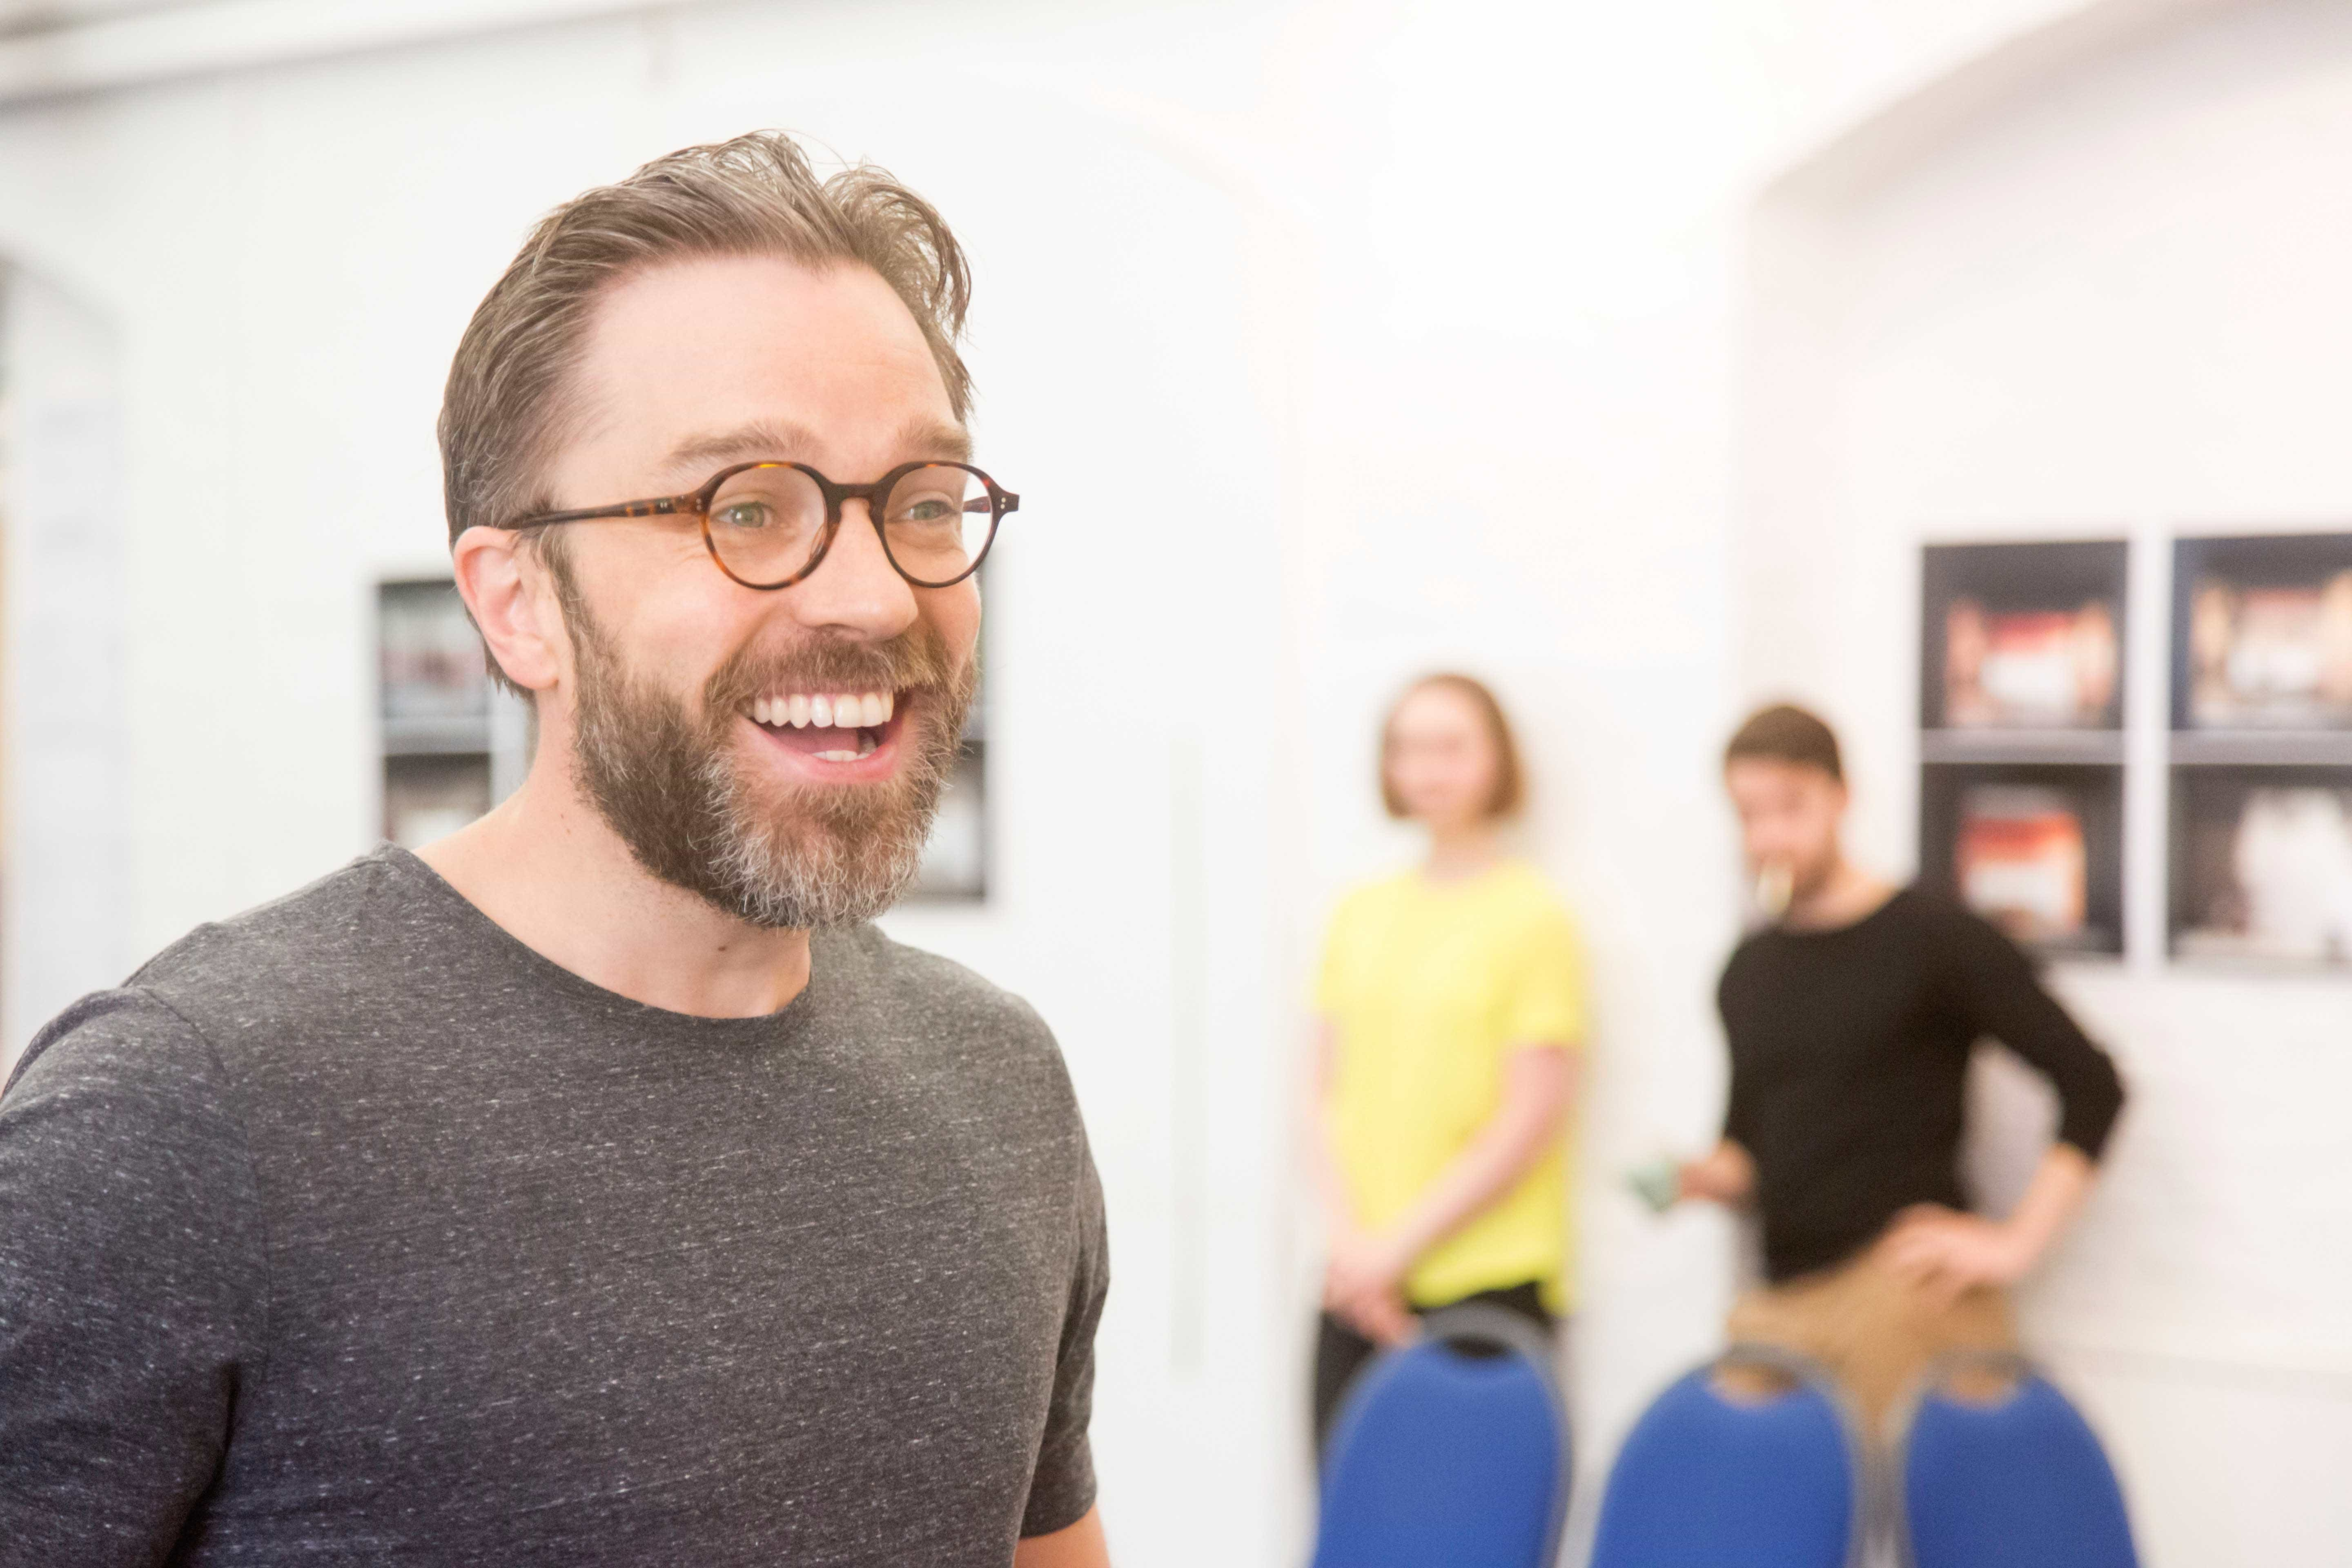 Hadley Fraser in rehearsals for Harlequinade. Credit Johan Persson | Rehearsal images of Kenneth Branagh's Harlequinade